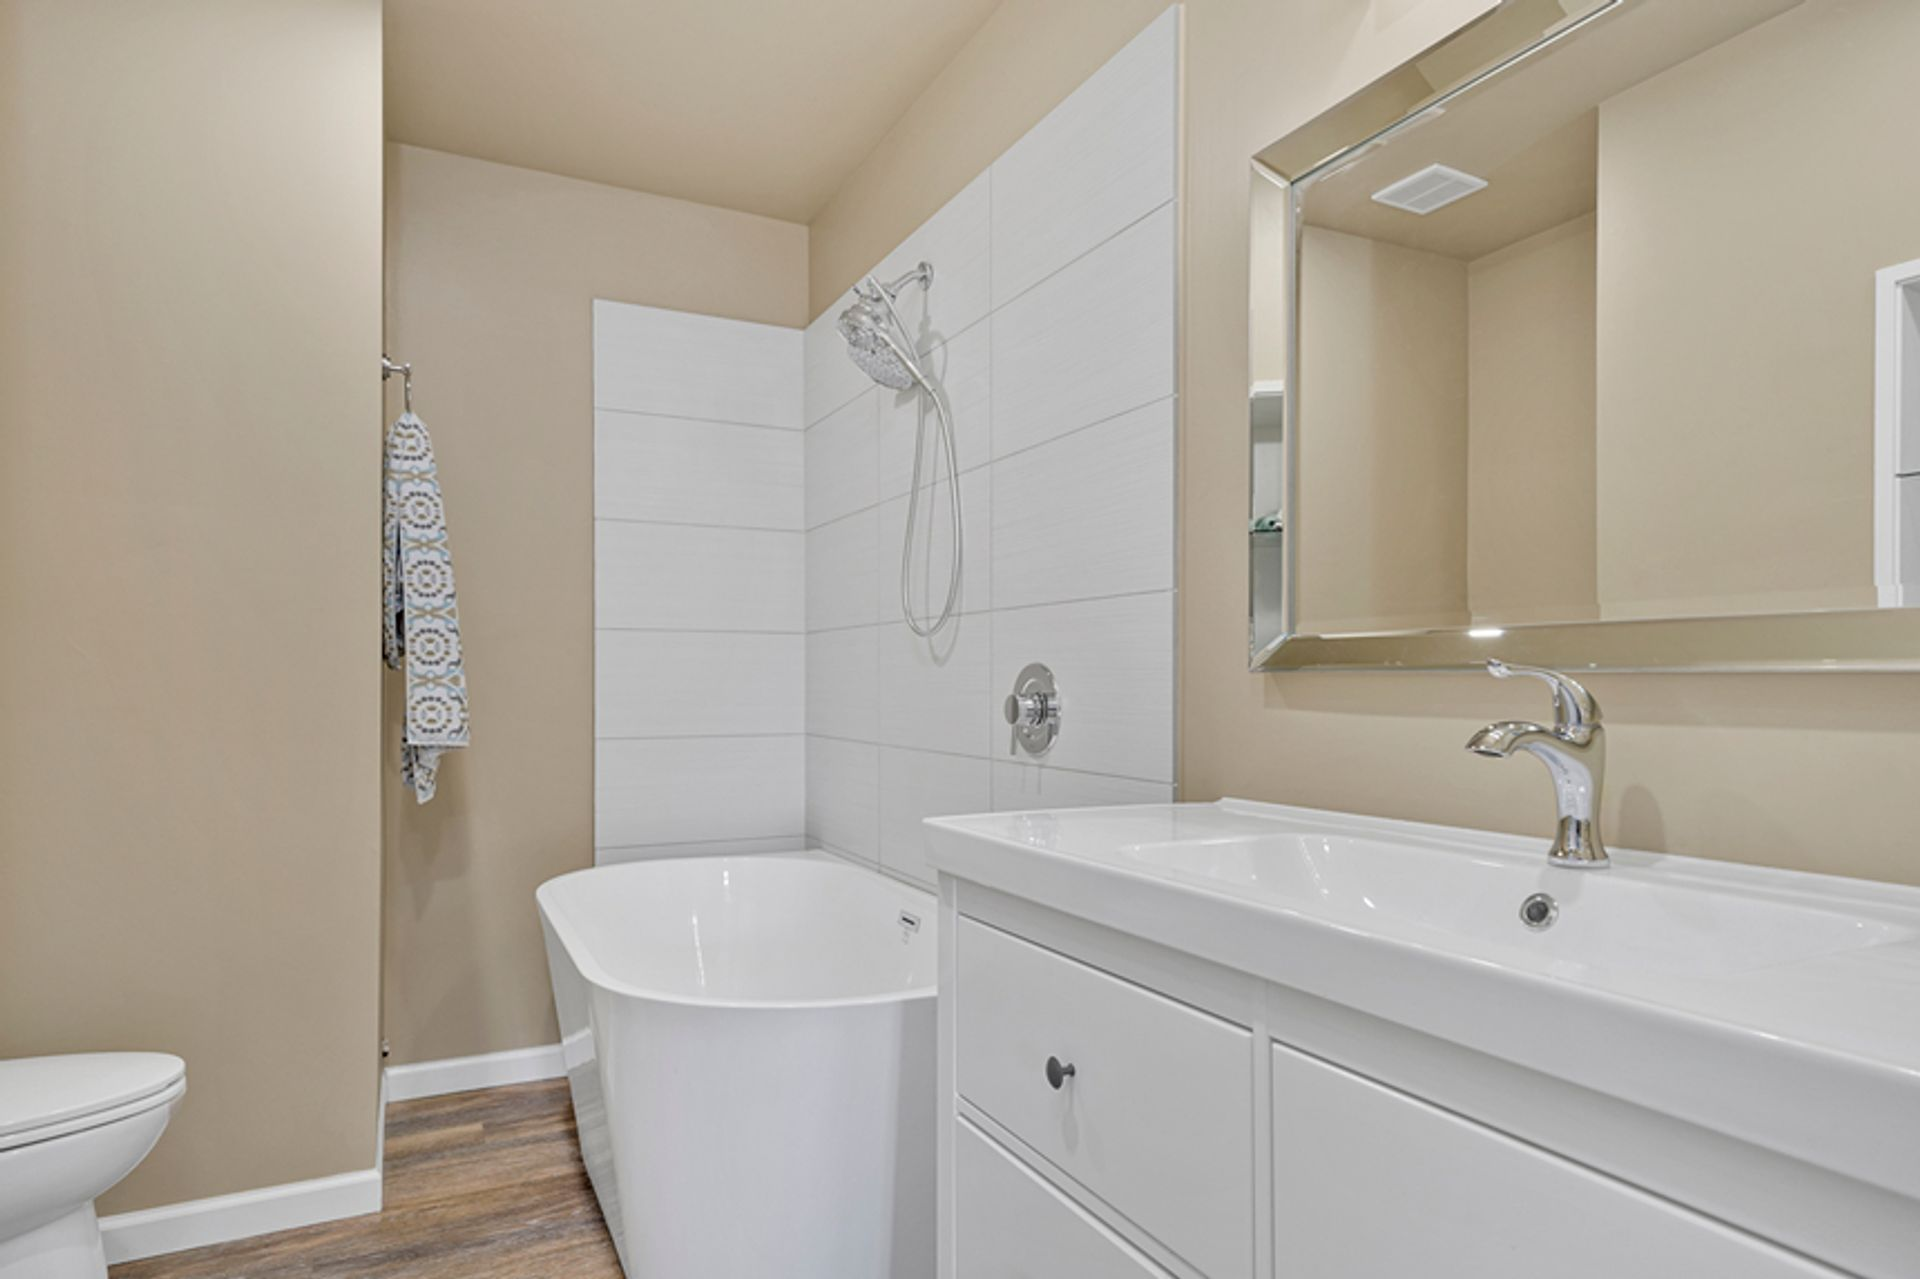 3l-above-bathroom-17 at 836 Irvine Street, Meadow Brook, Coquitlam